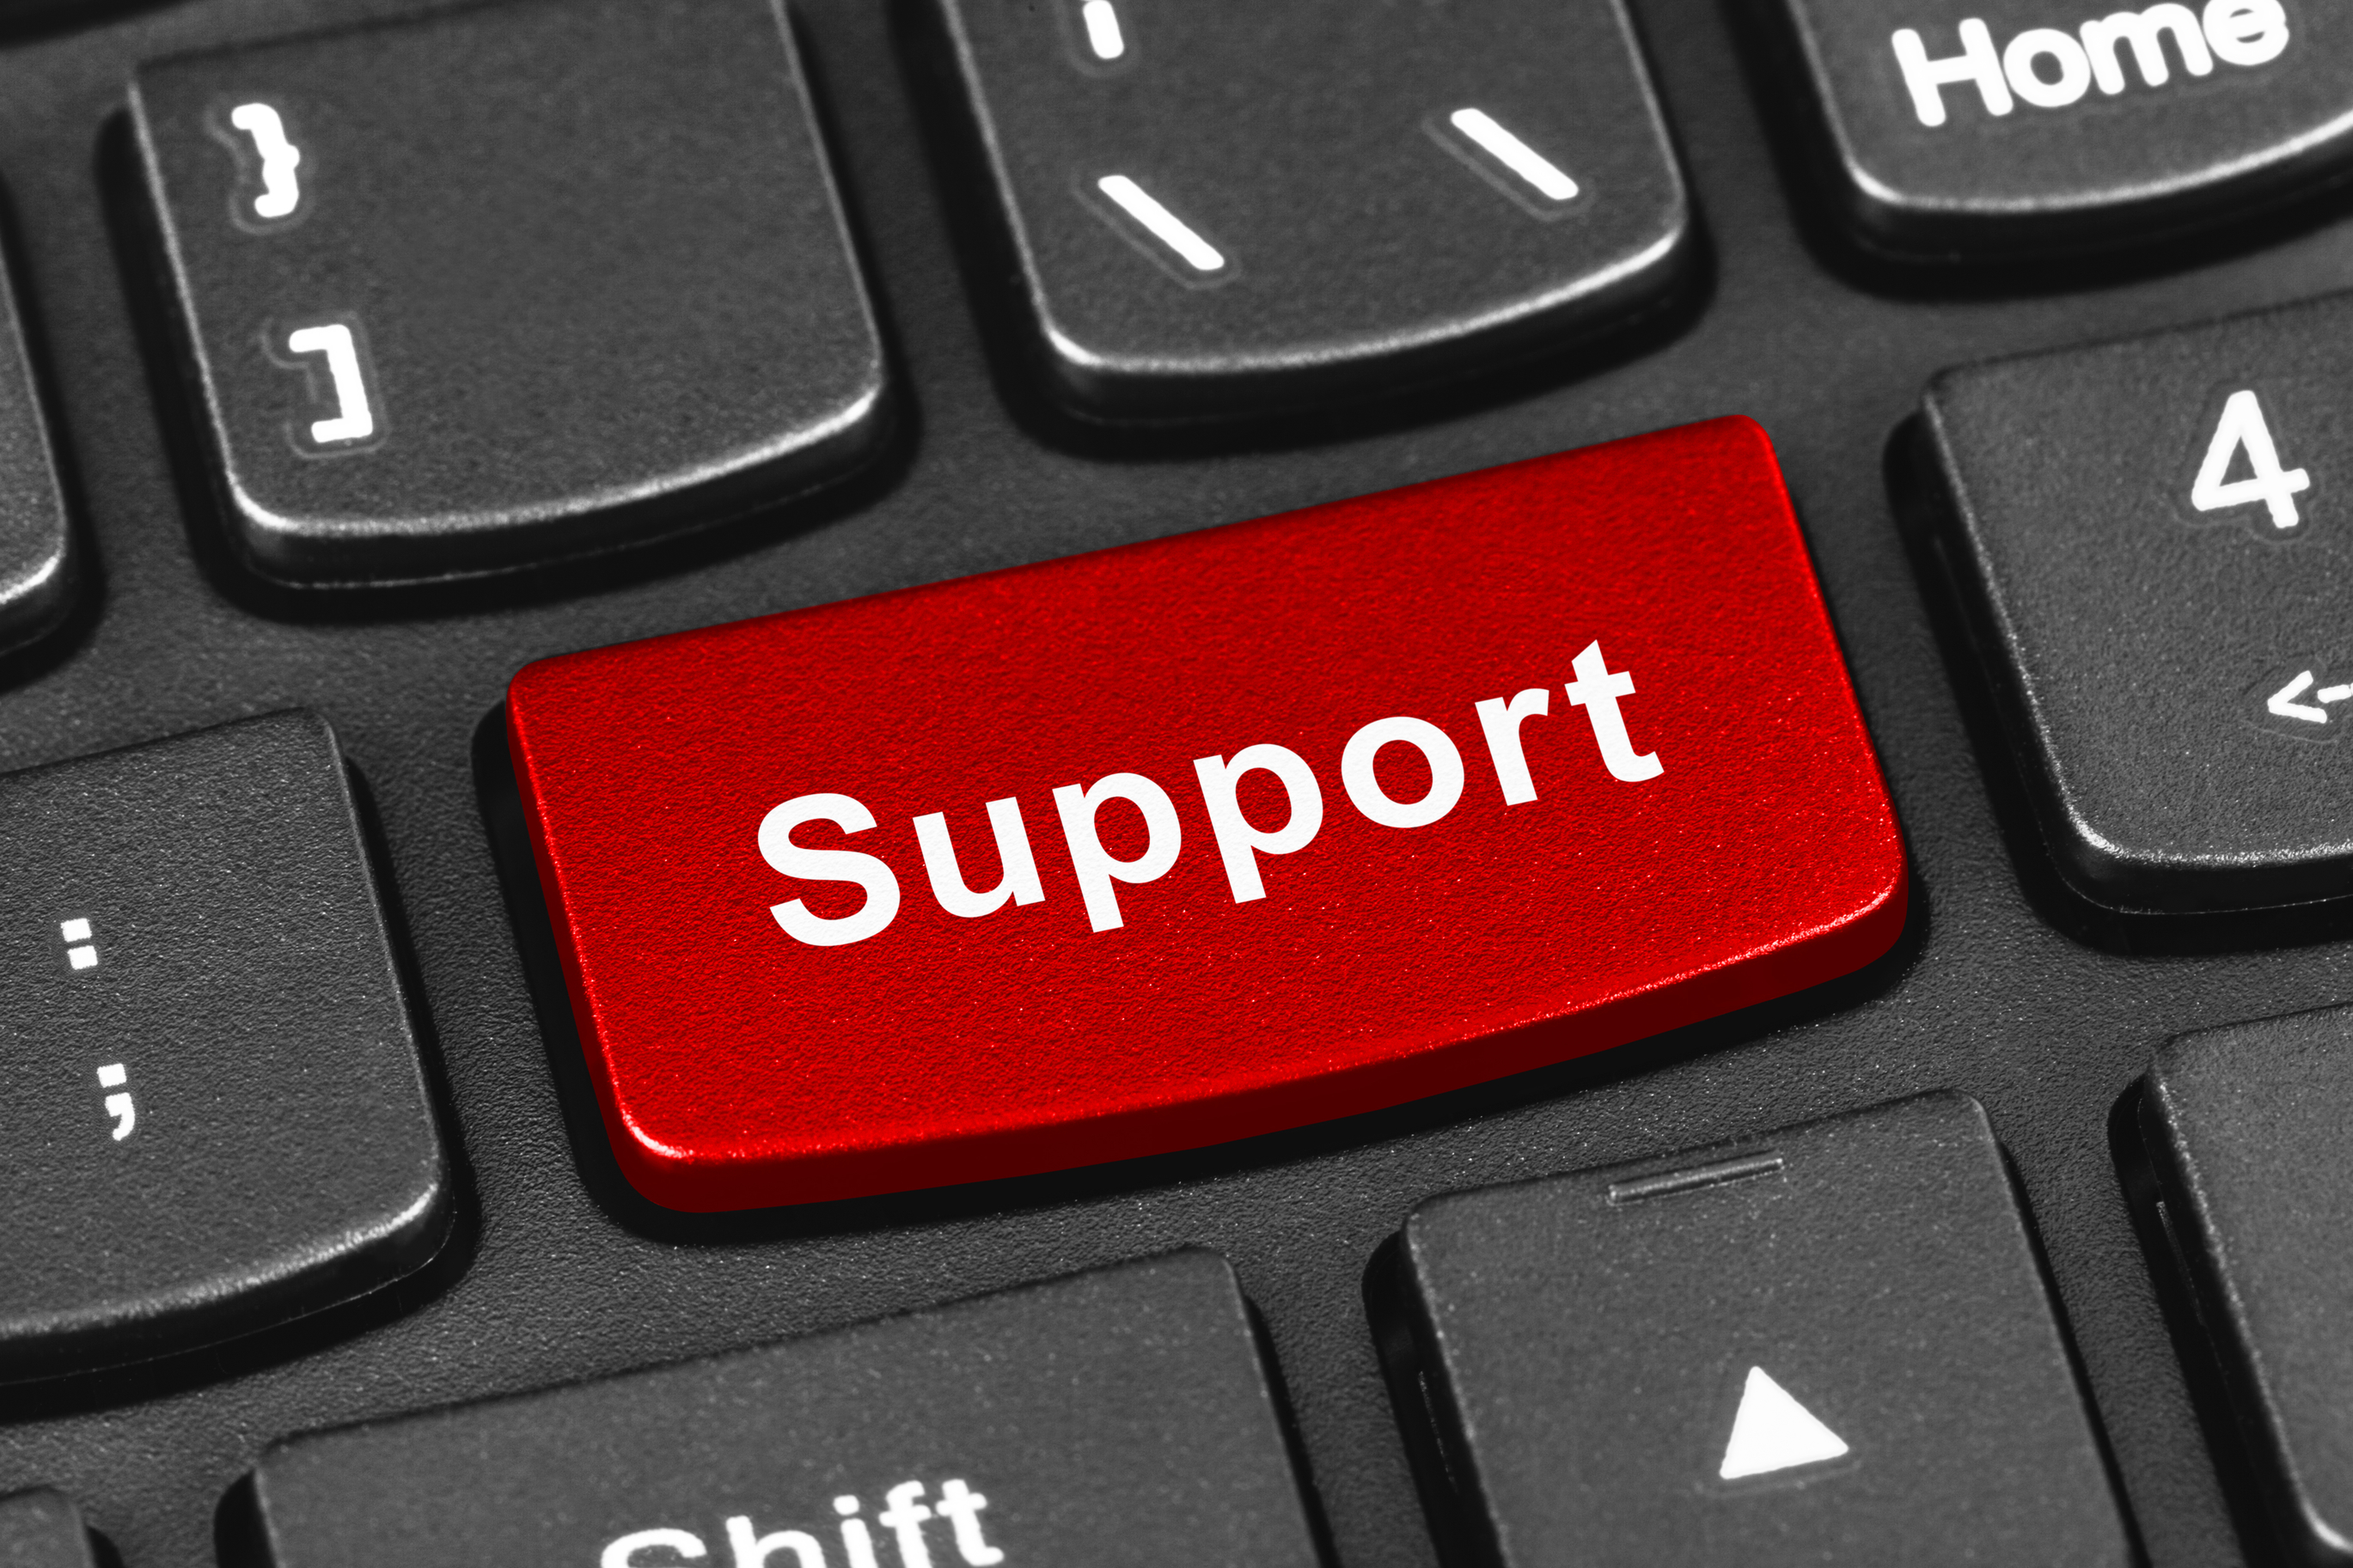 IT service support